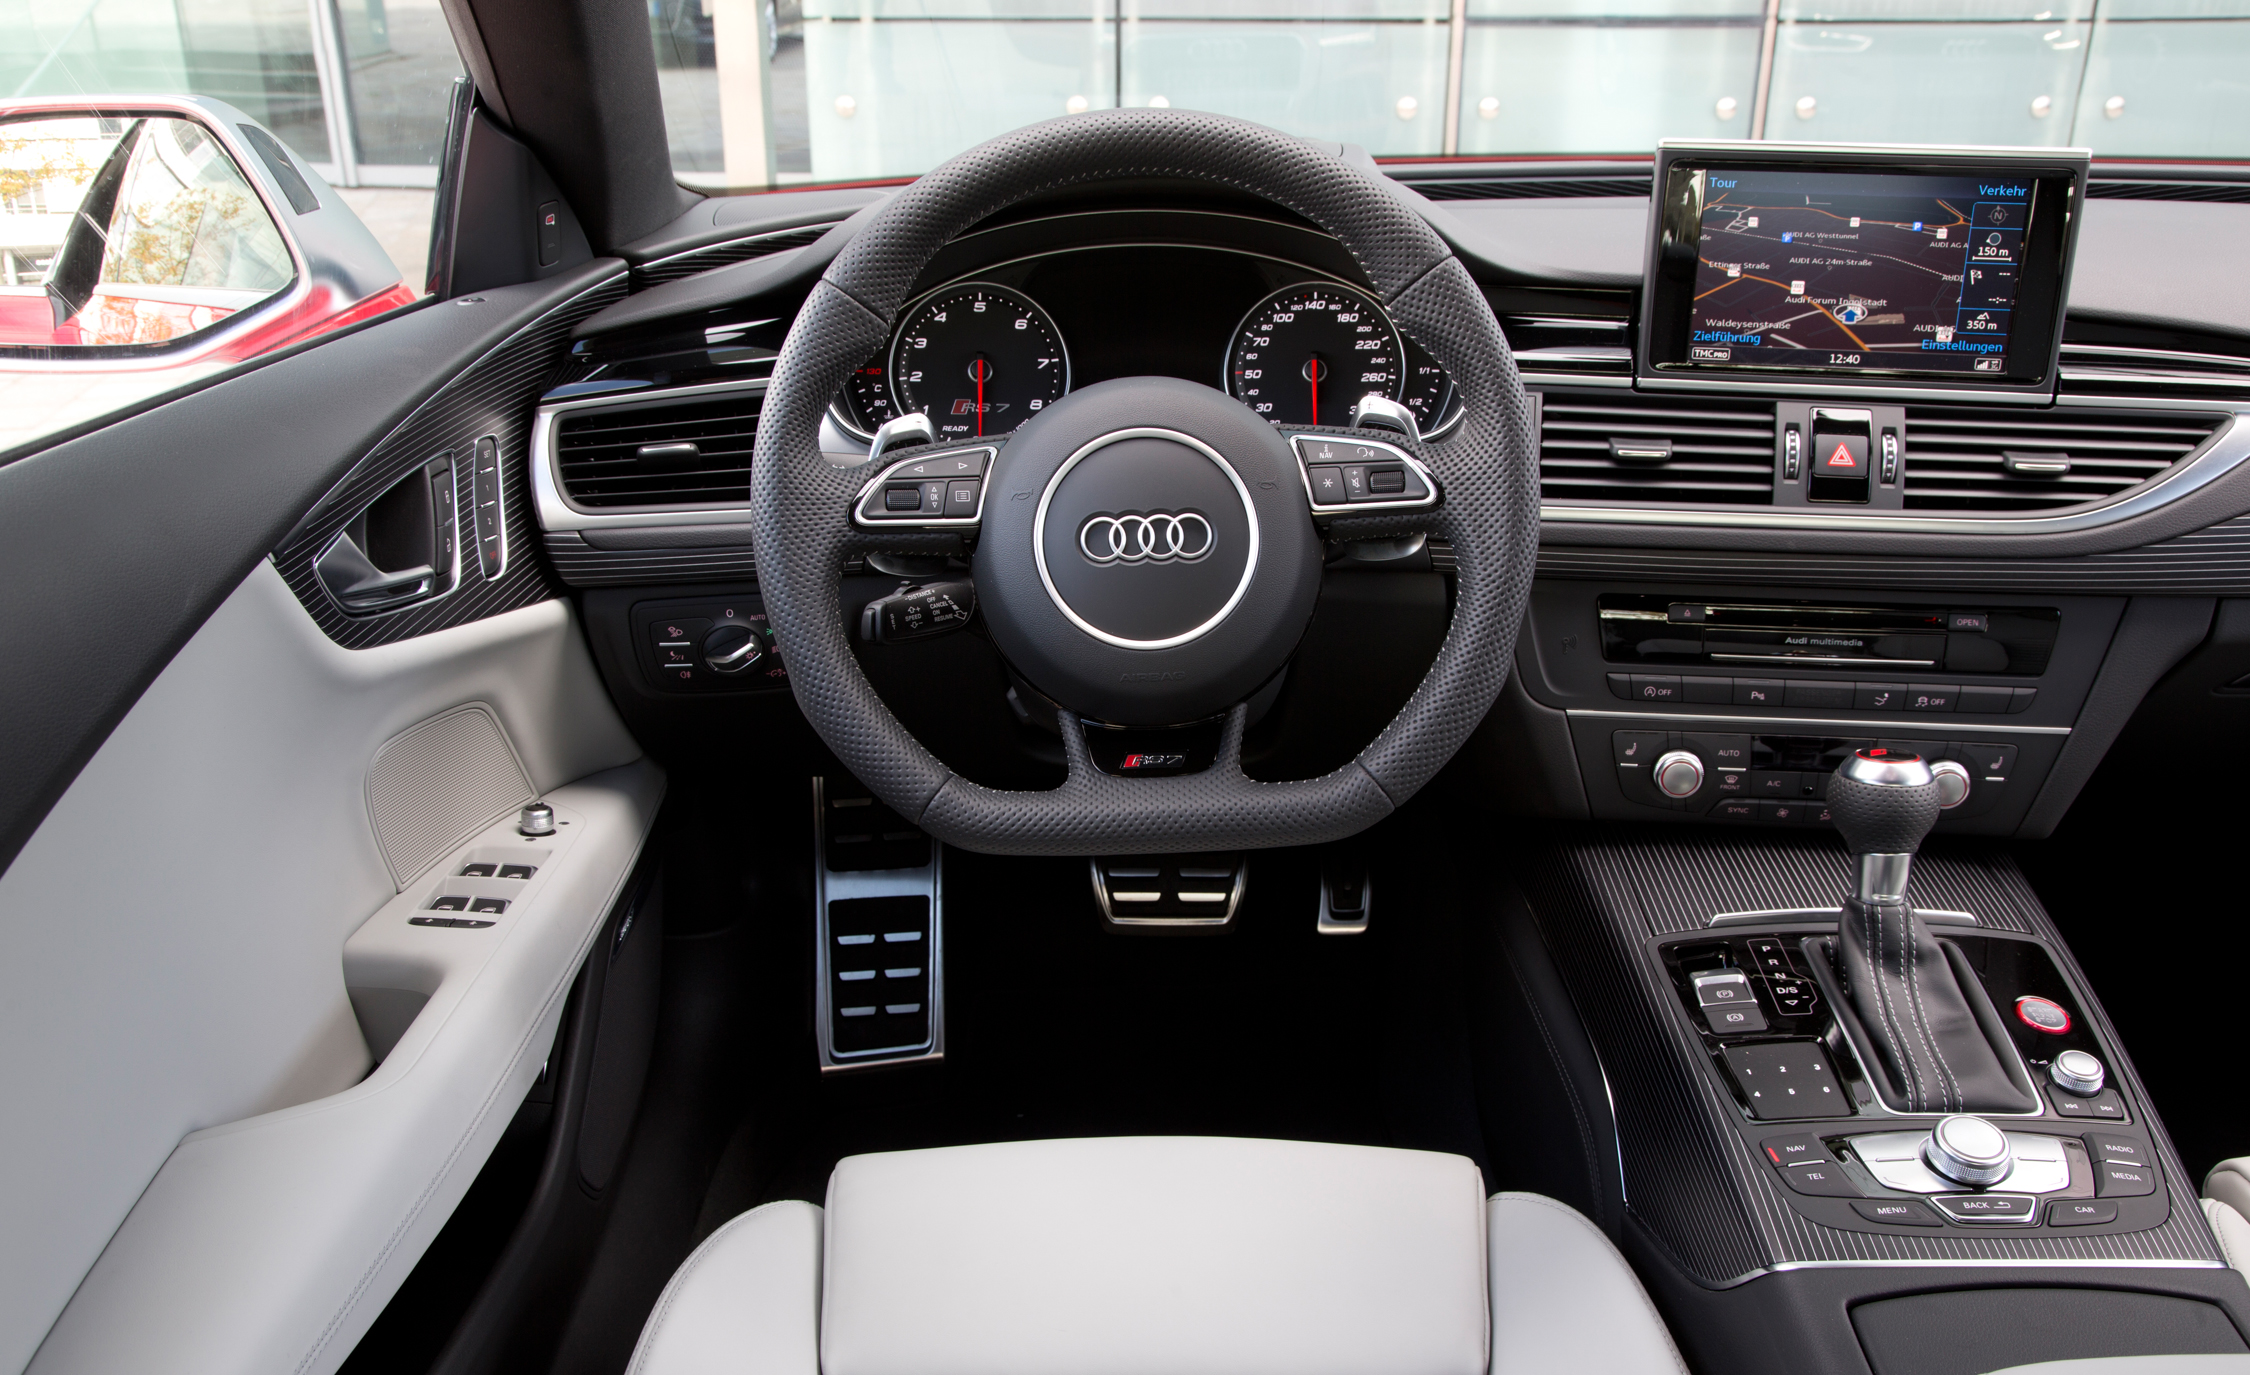 2016 Audi RS7 Interior (Photo 19 of 20)